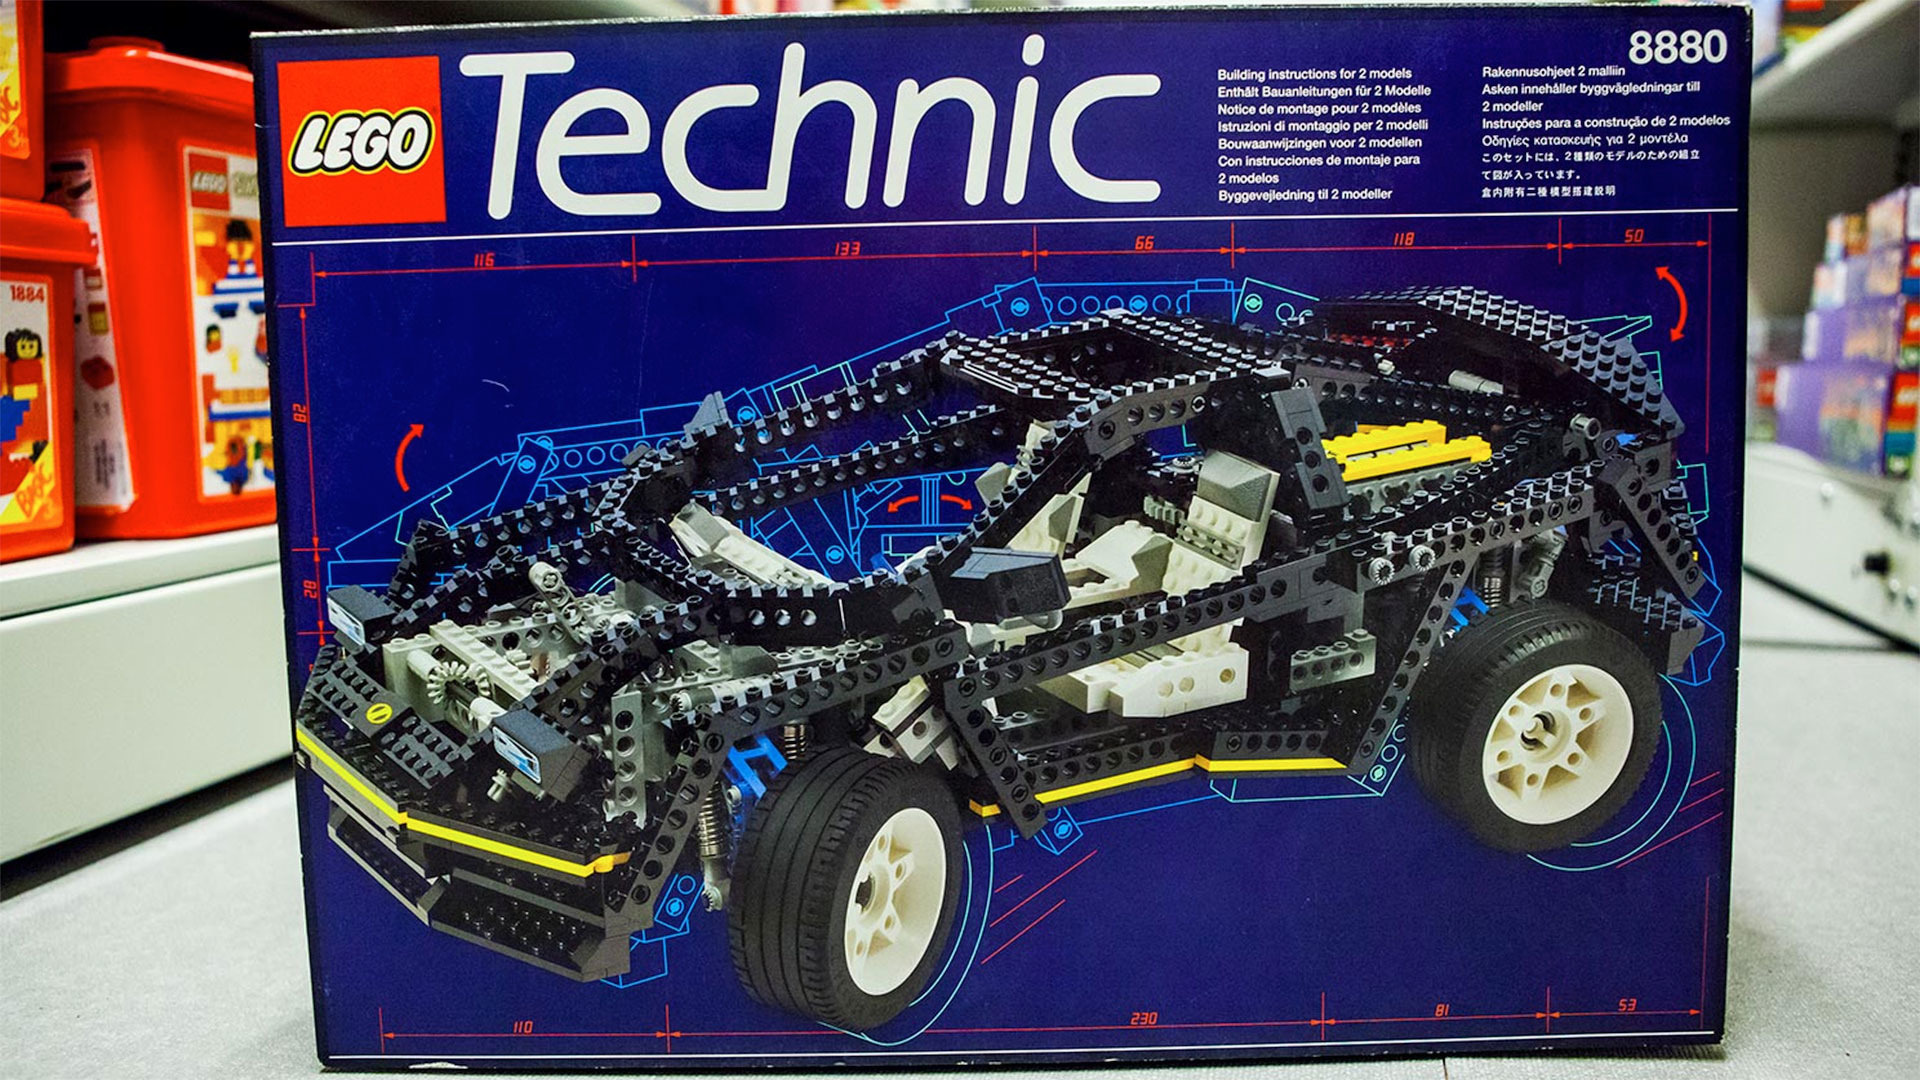 2018 Technic Lego >> The Lego Technic Car I Always Wanted Now Costs A Thousand Bucks